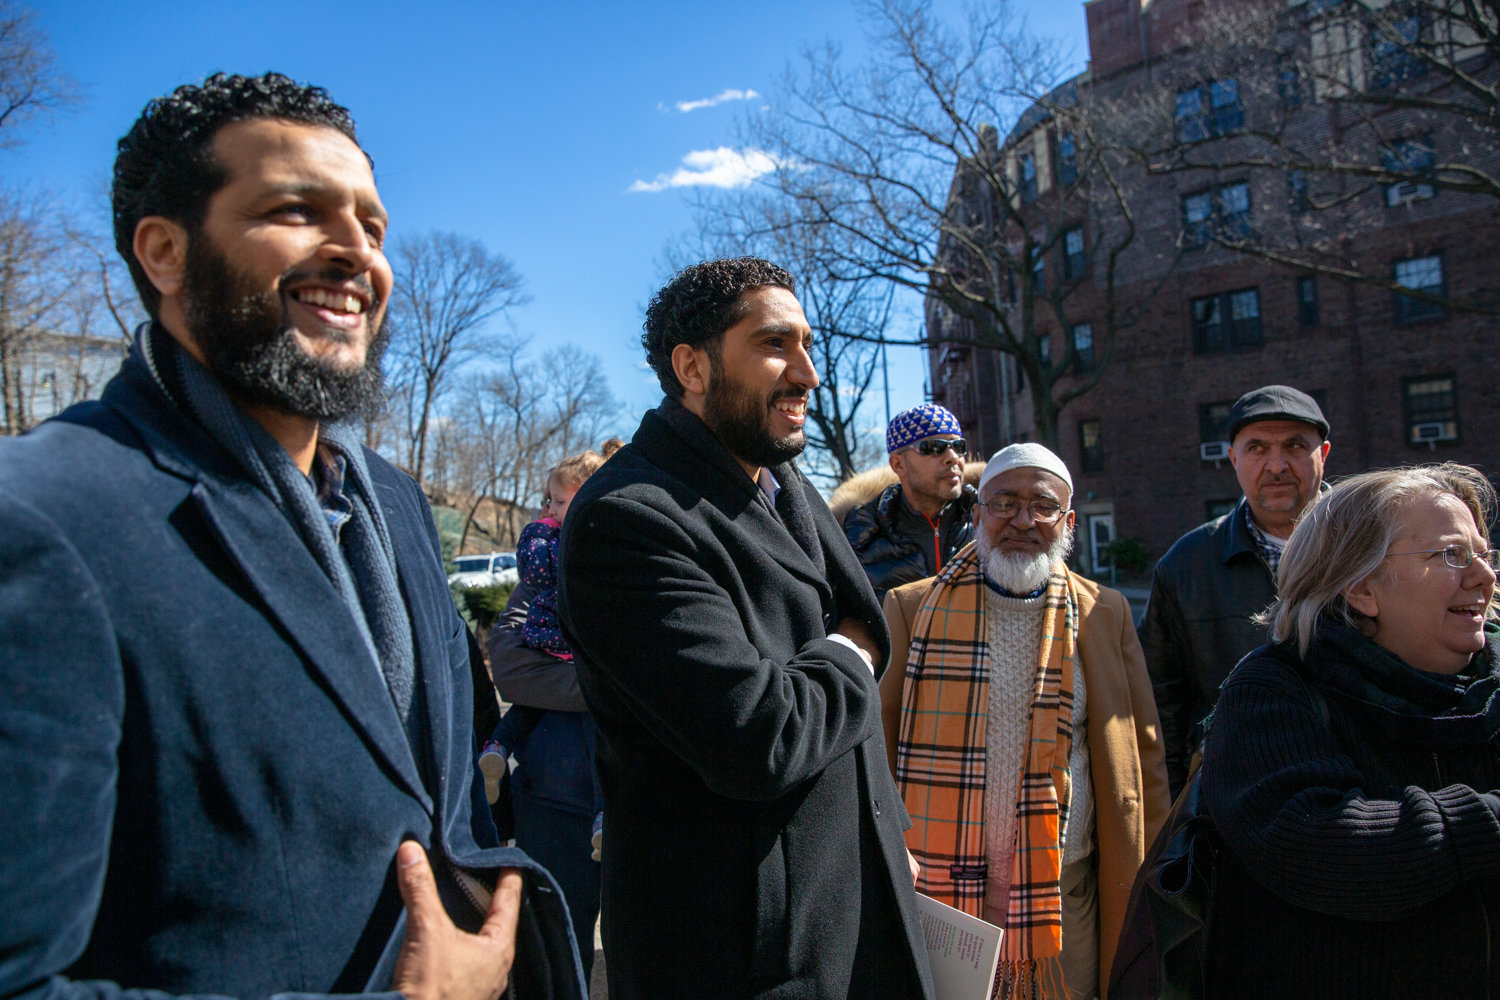 Imam Yassine Taoufik, center, who leads the Abrar, a mosque, in Kingsbridge, attends a vigil last year. Taoufik has found the sense of community among his congregants has grown stronger in the time since the coronavirus pandemic began.